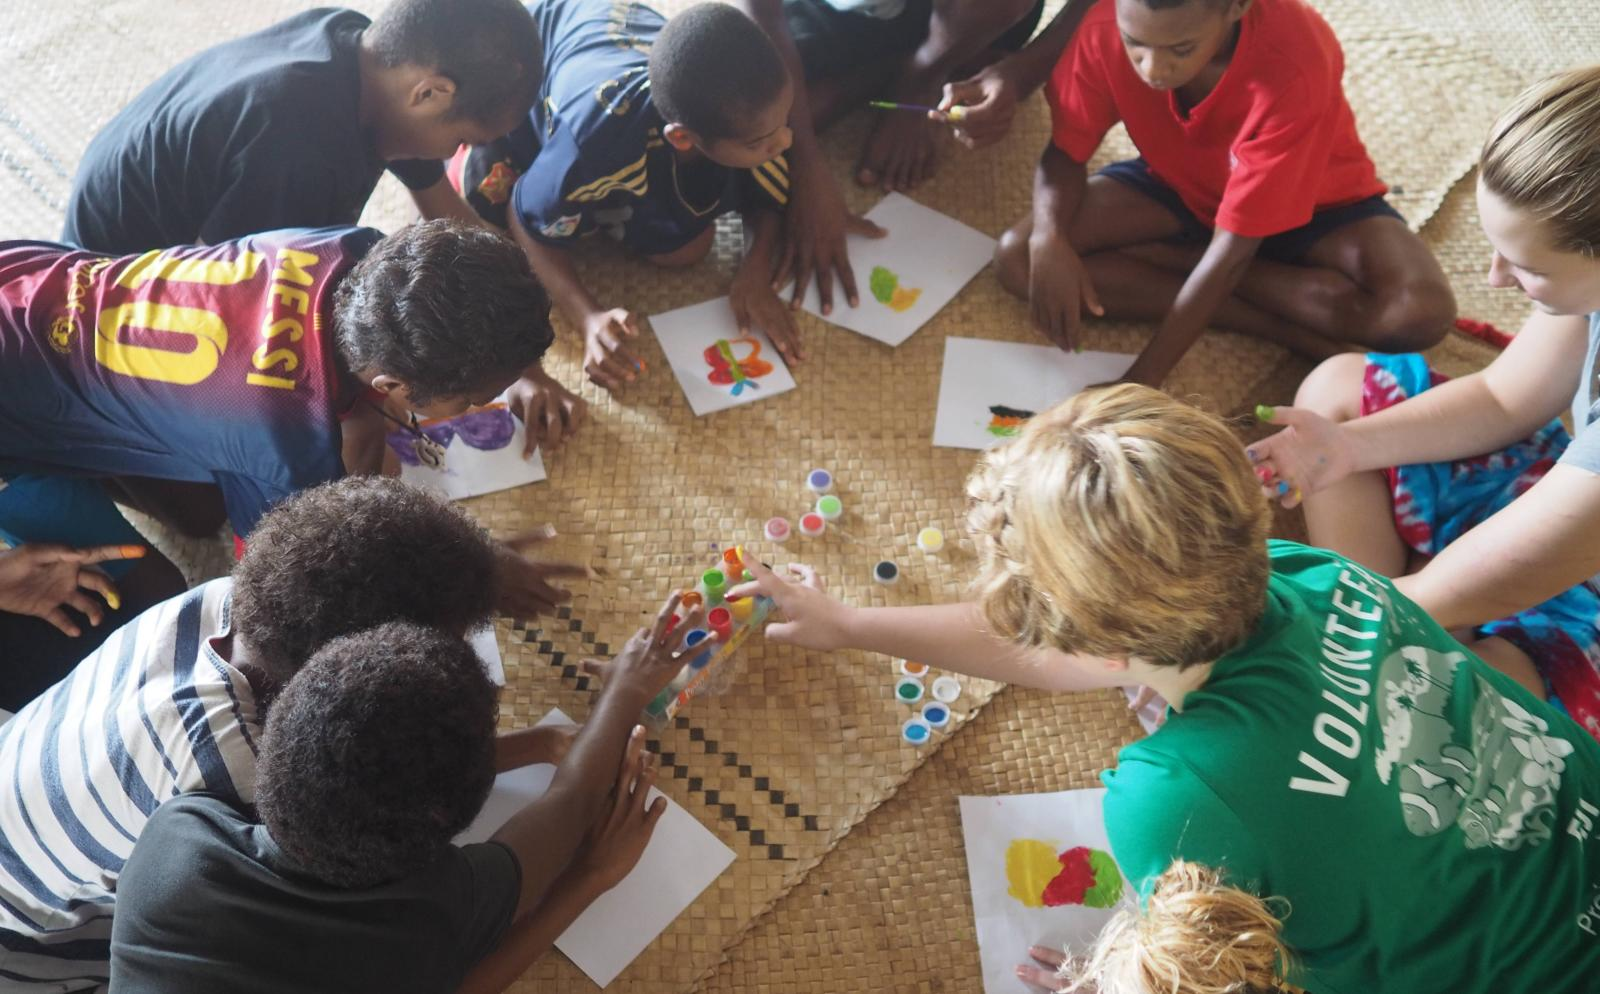 Projects Abroad volunteers play educational games with children from a nursery school rather than an orphanage abroad